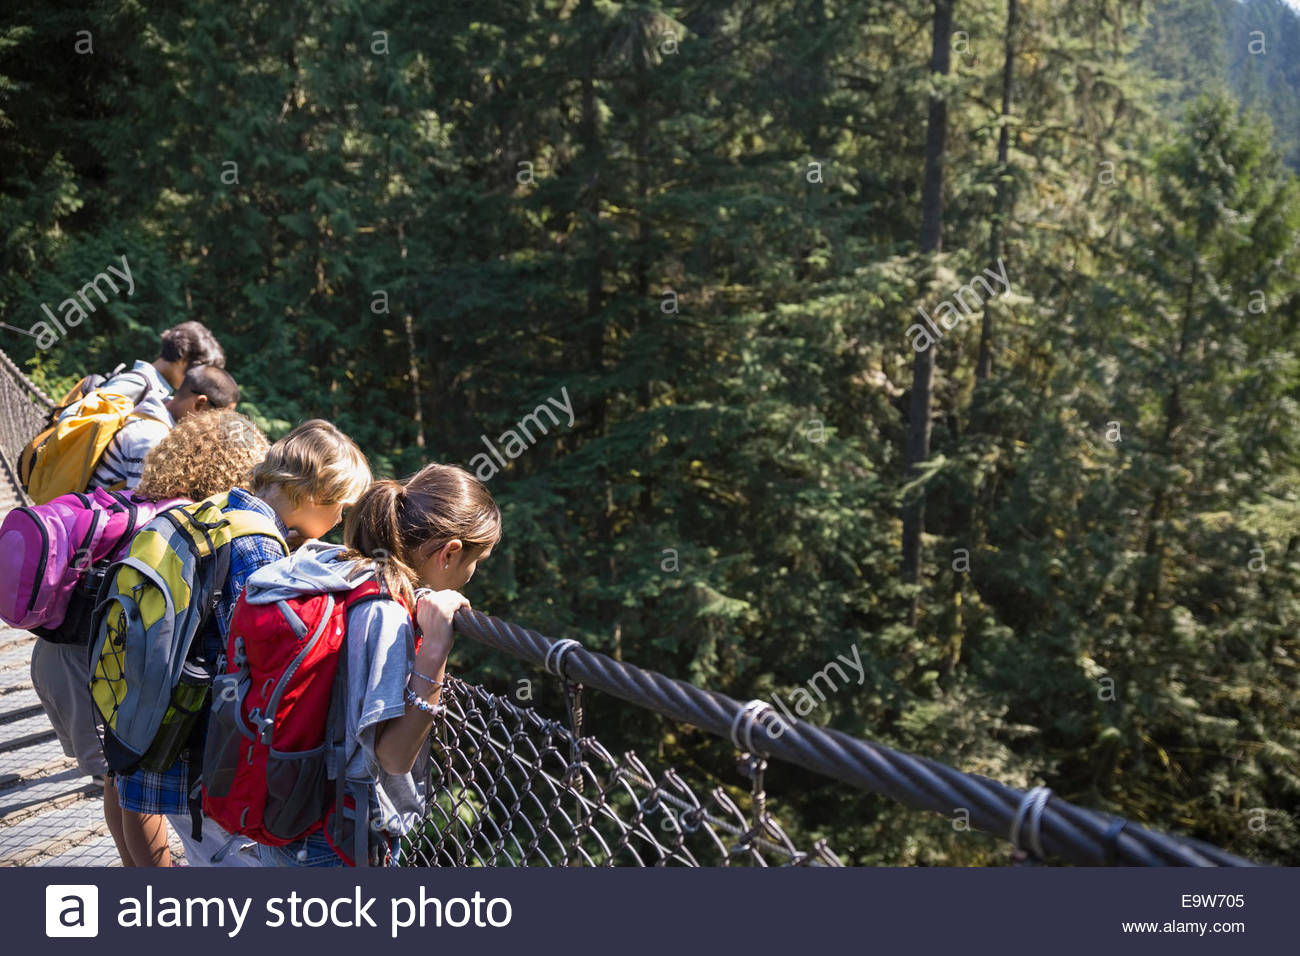 Children with backpacks looking down from footbridge - Stock Image